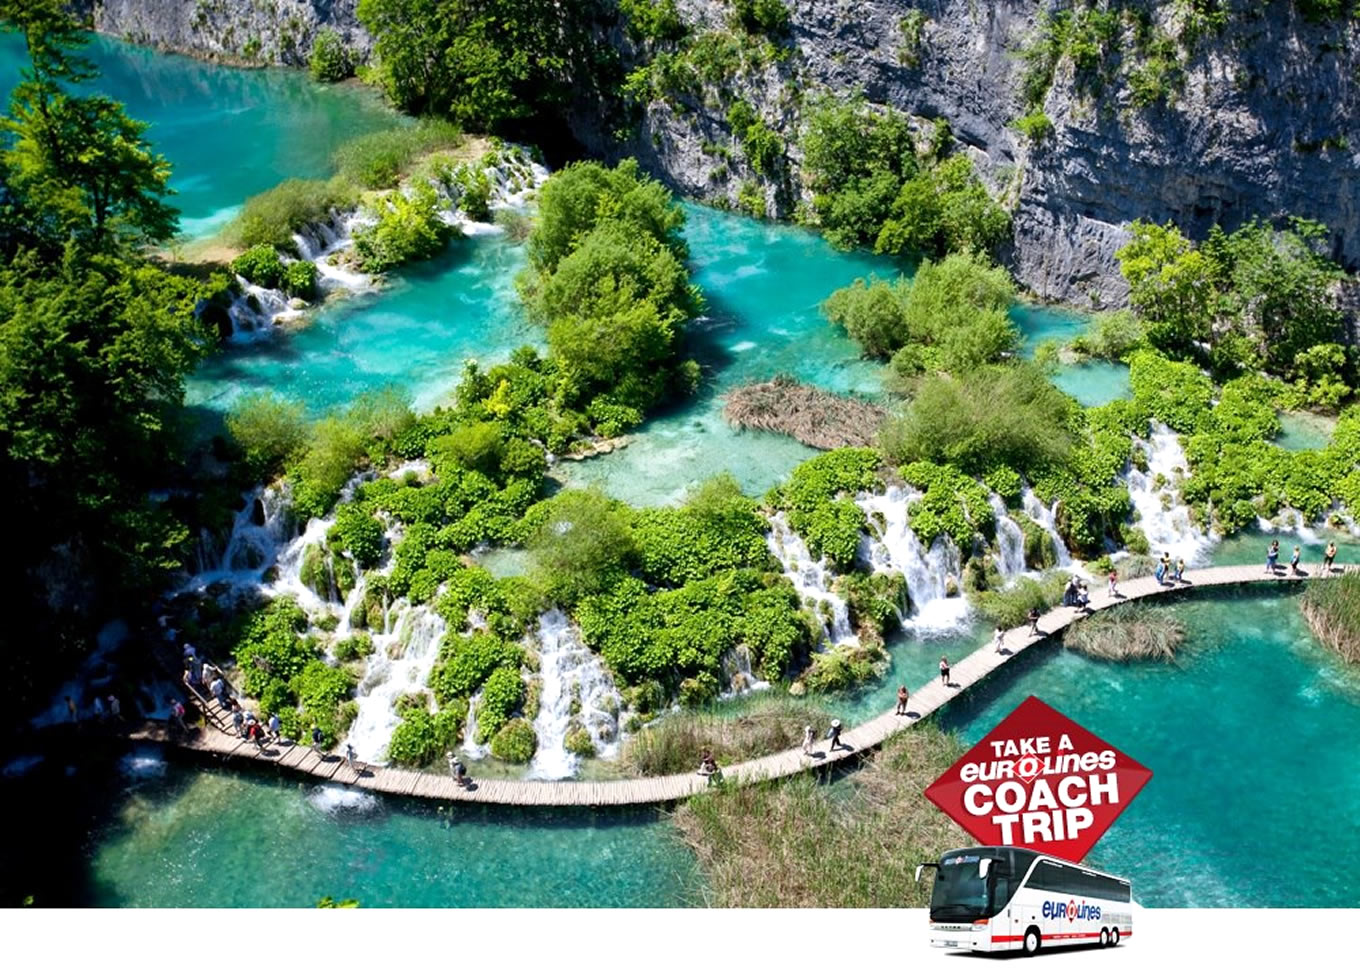 Plitvice Lakes in Croatia Poster of Coach Trip Campaign by Eurolines UK